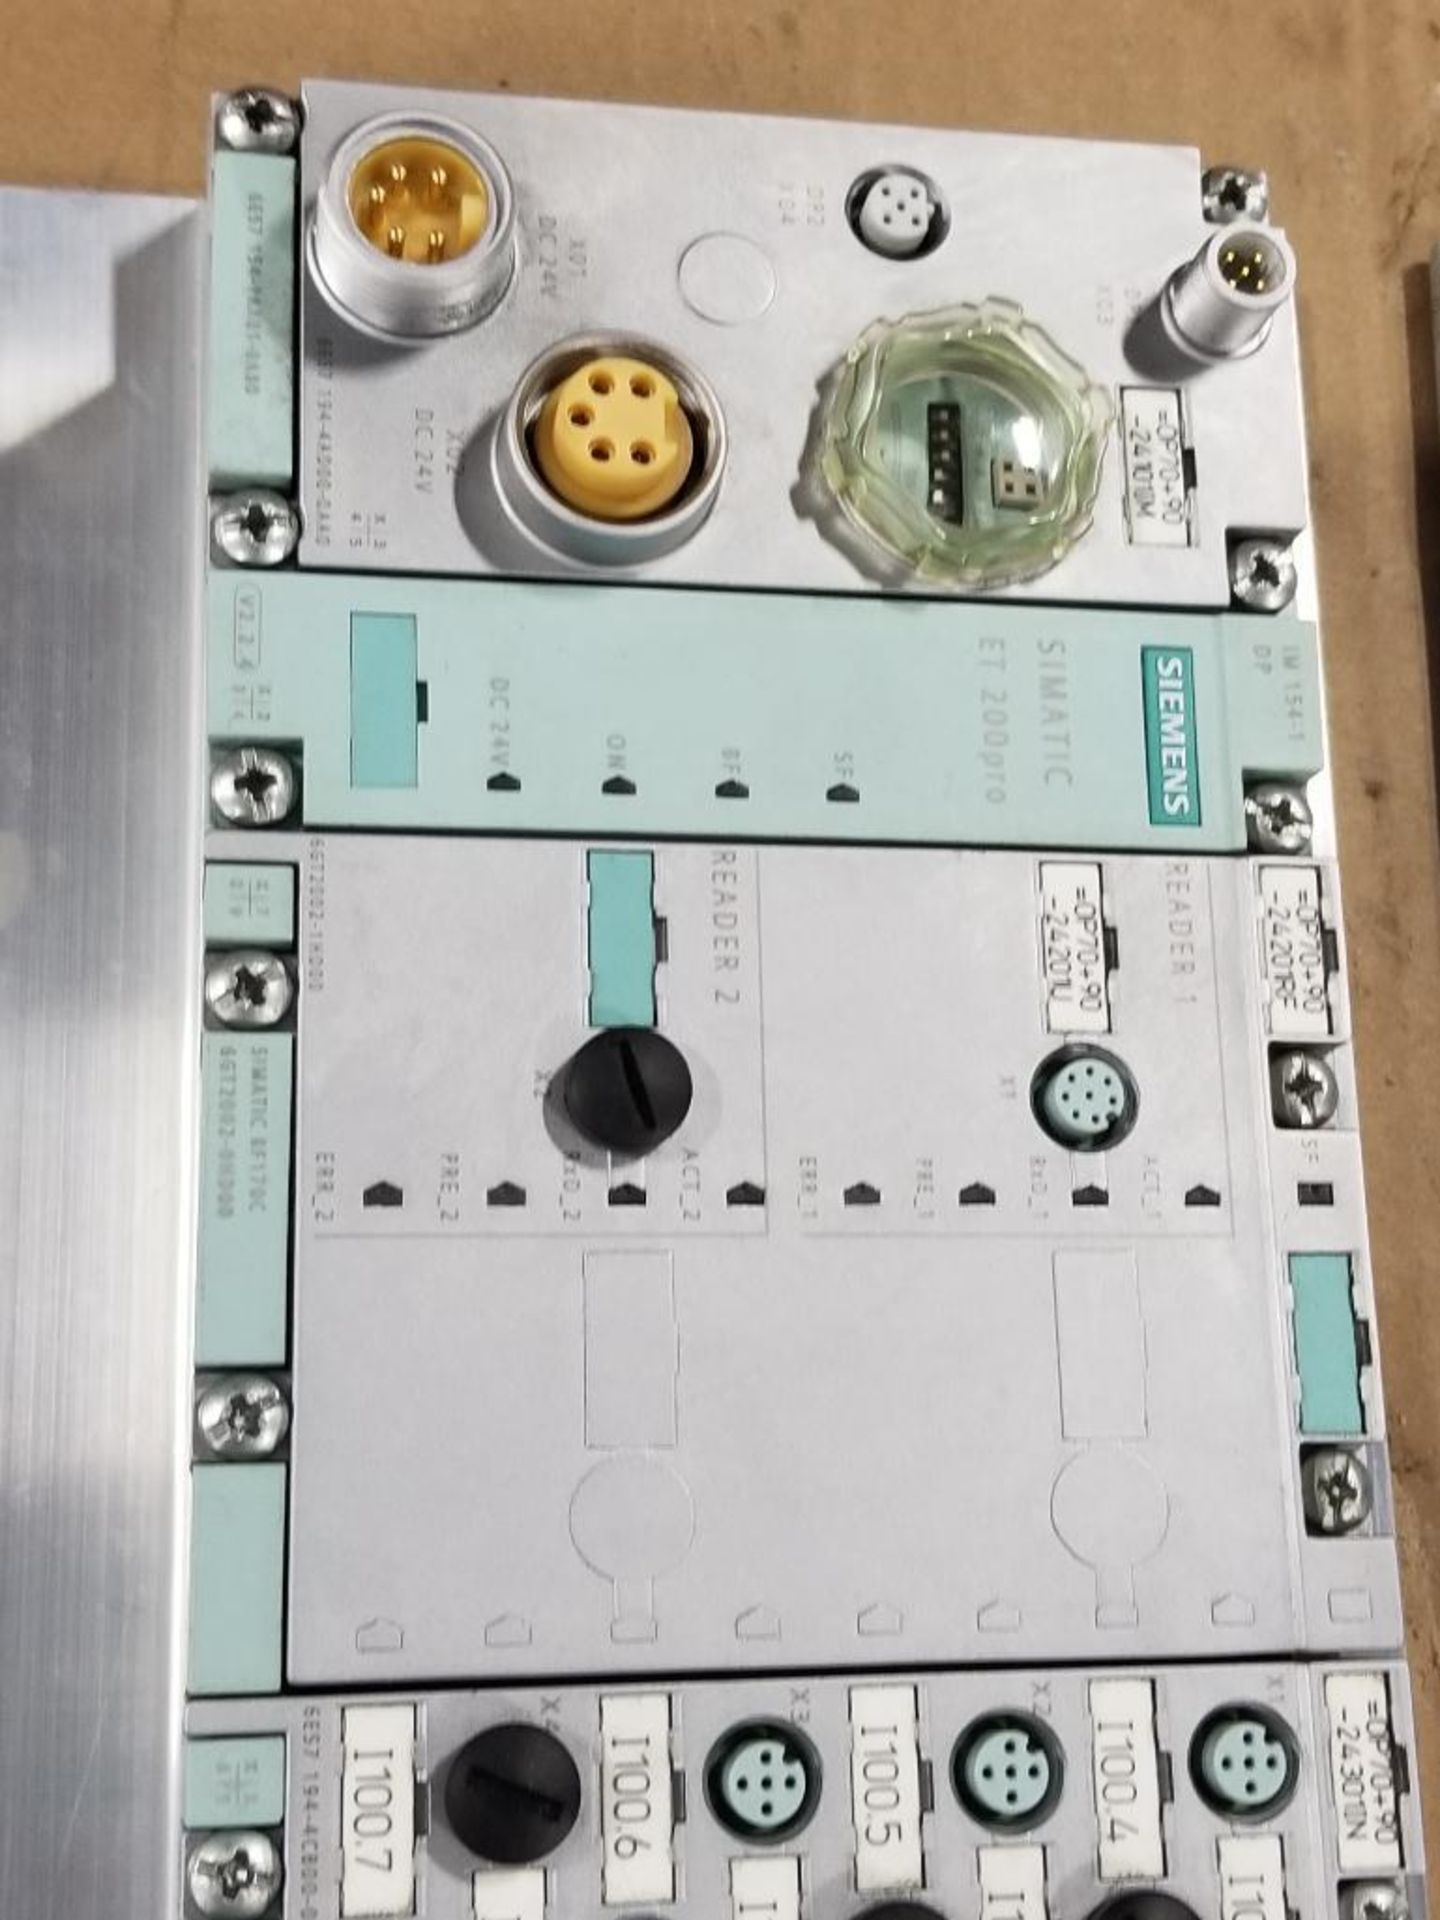 Siemens DSe-ST 3RK1304-5KS40-4AA0 disconnect module with flow control line. - Image 5 of 5